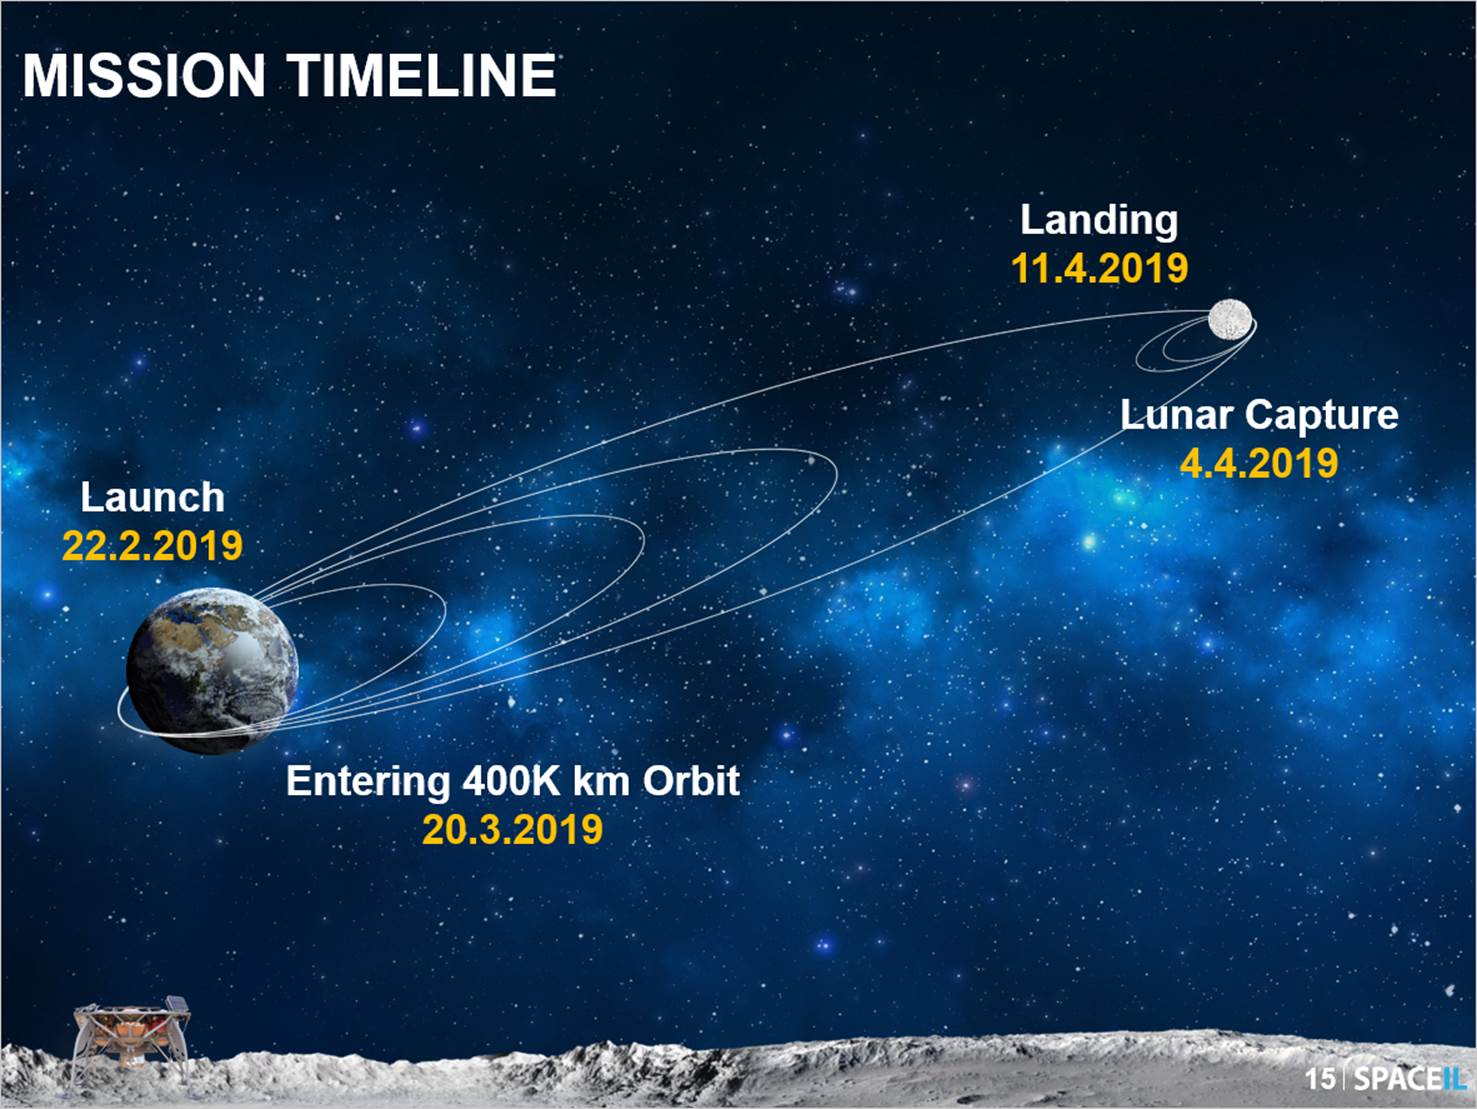 SpaceIL mission timeline